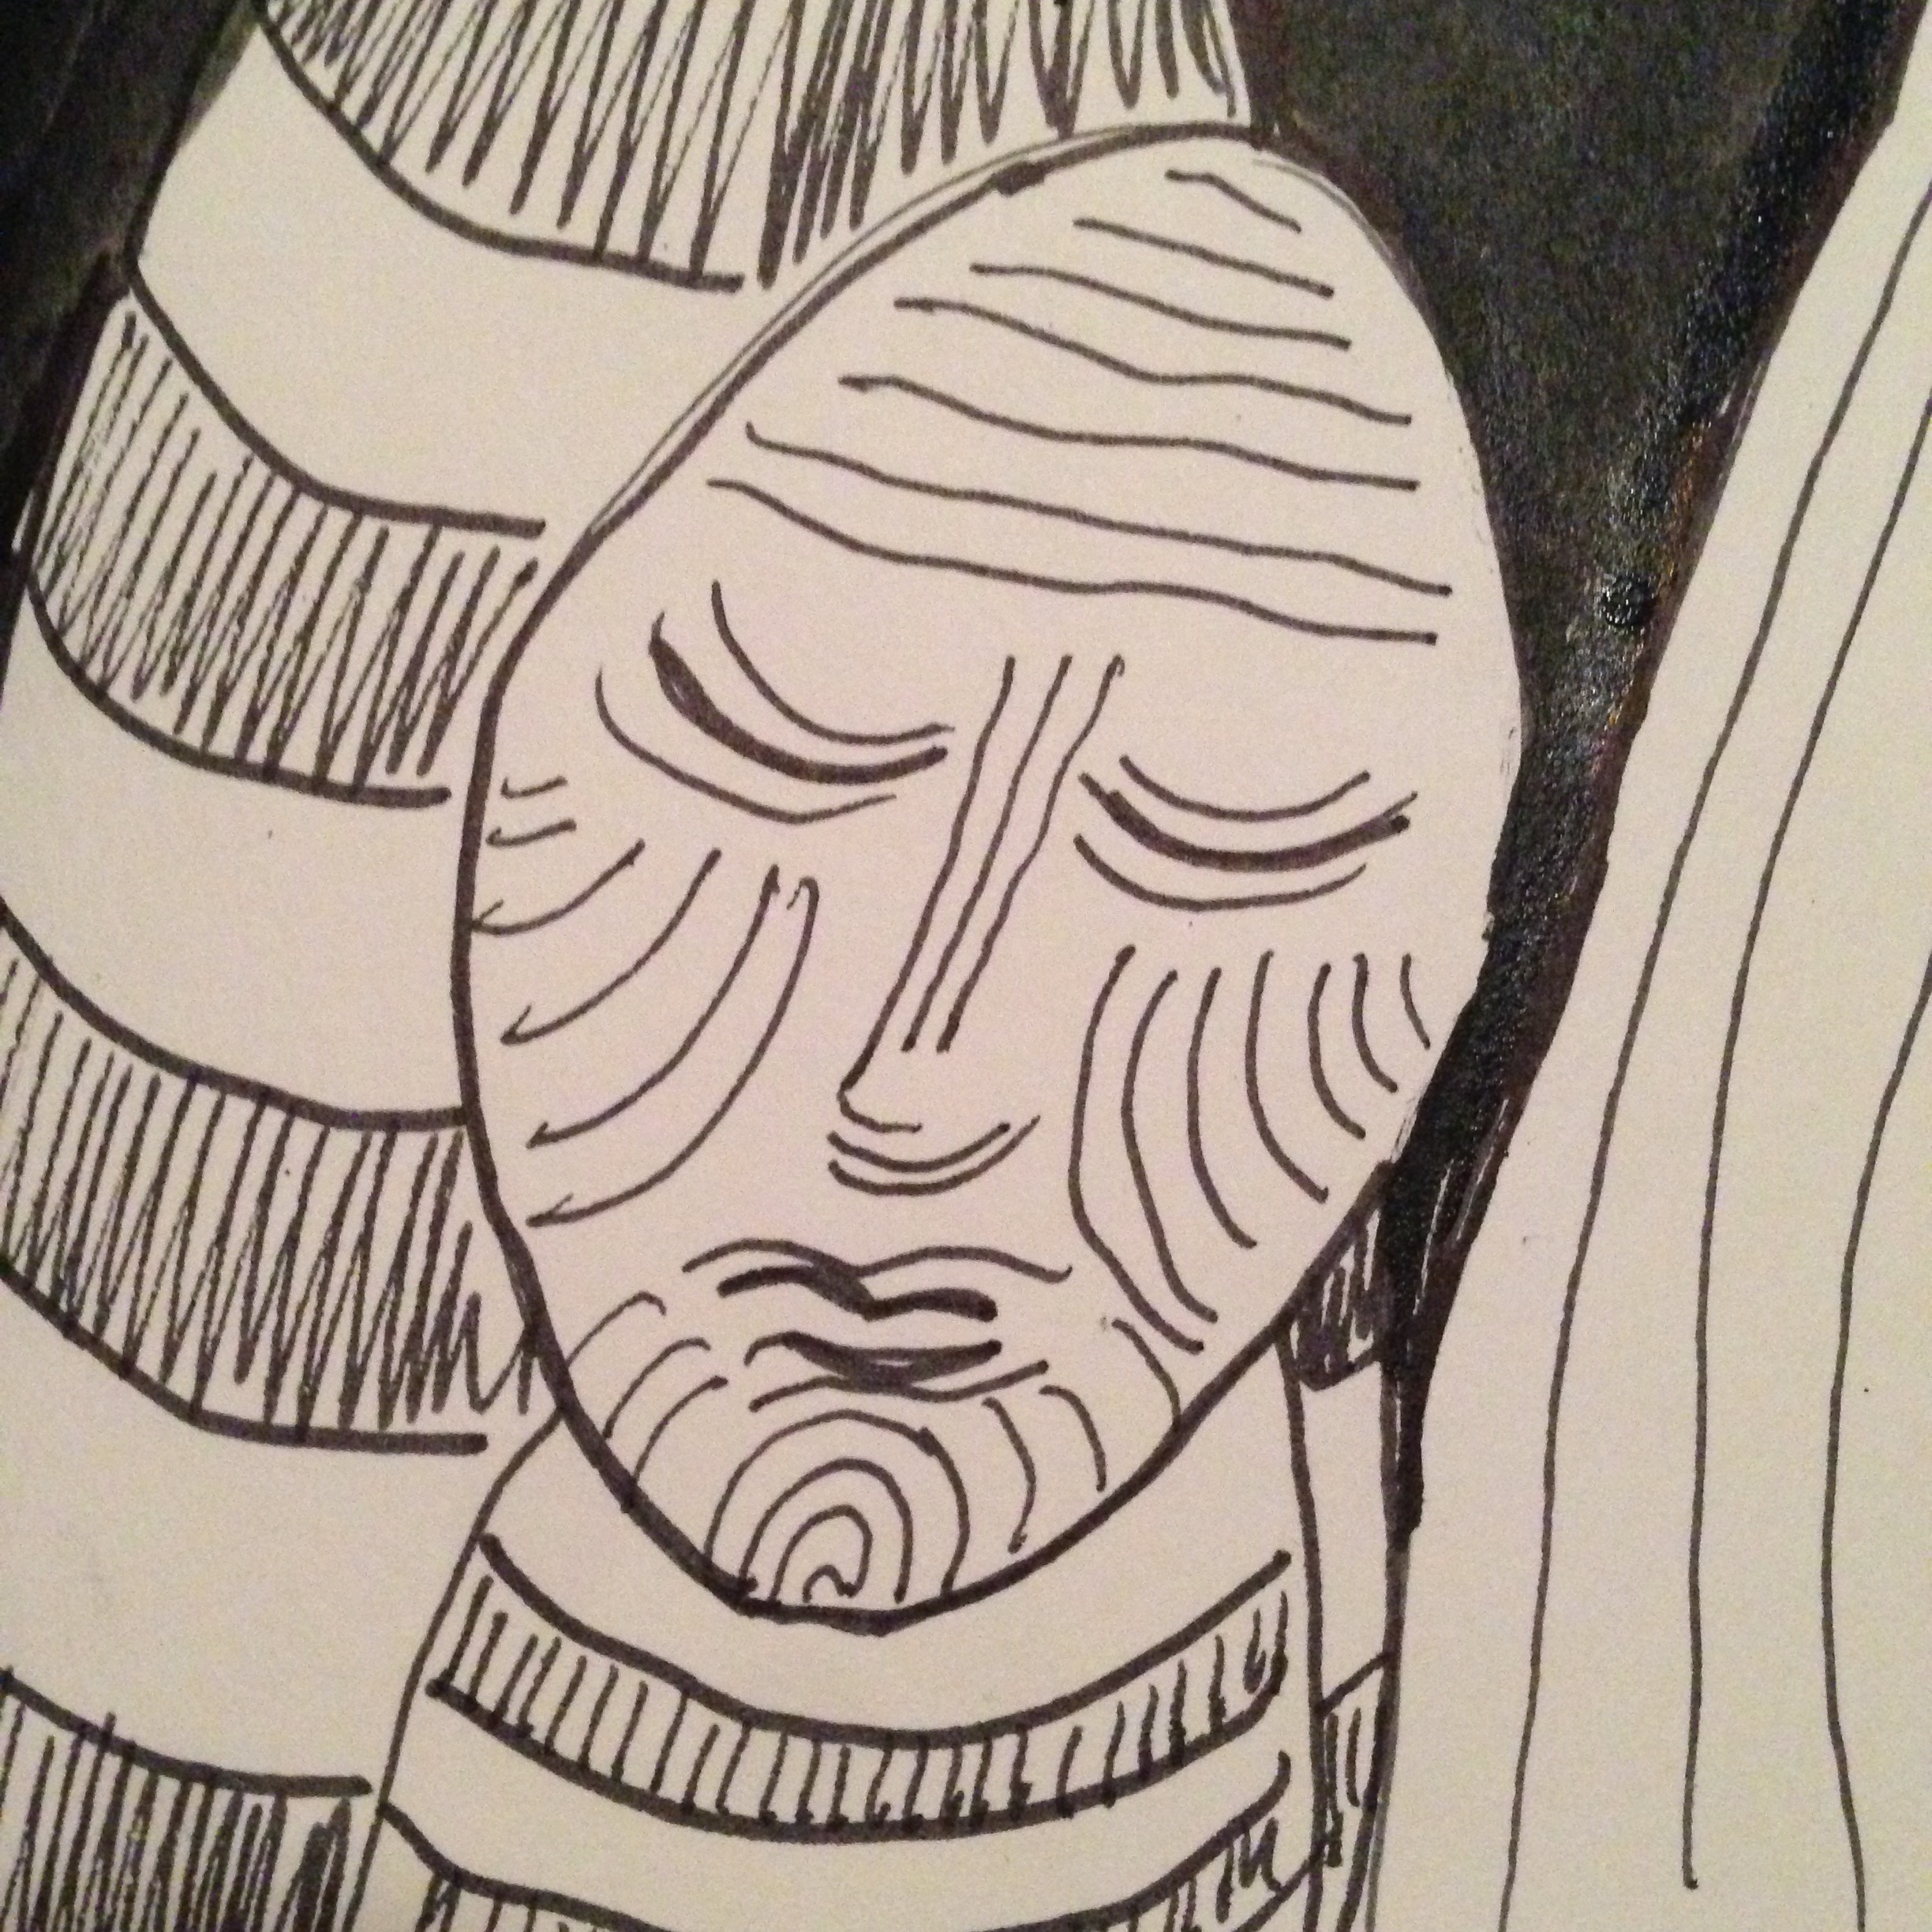 #DoodleADay Challenge Day 10 at ArtTherapist.ca close-up 2